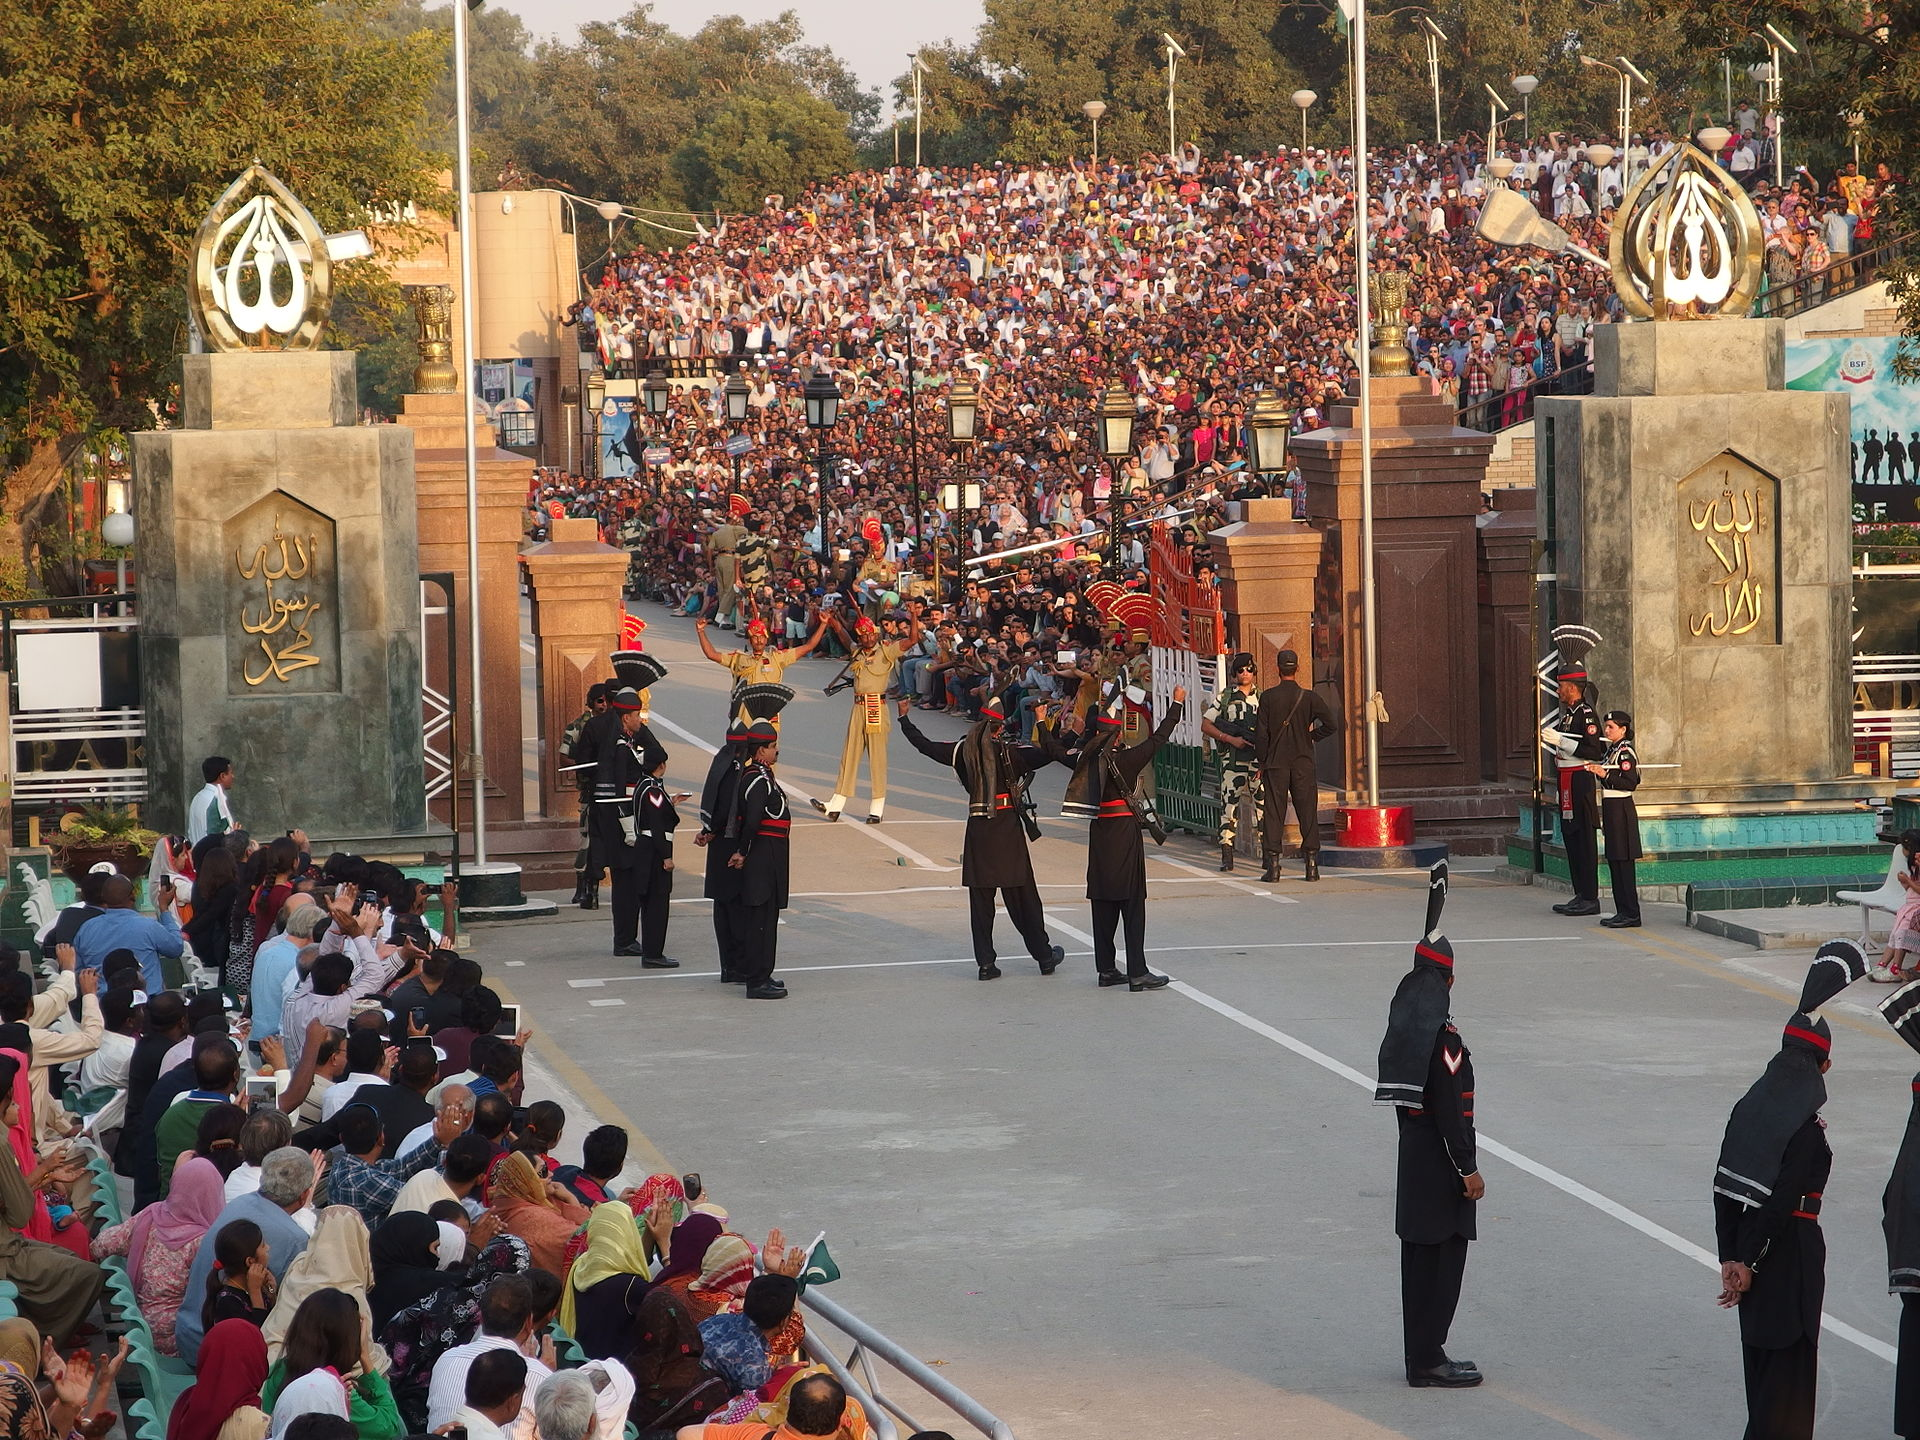 The land crossing at Wagah between India and Pakistan